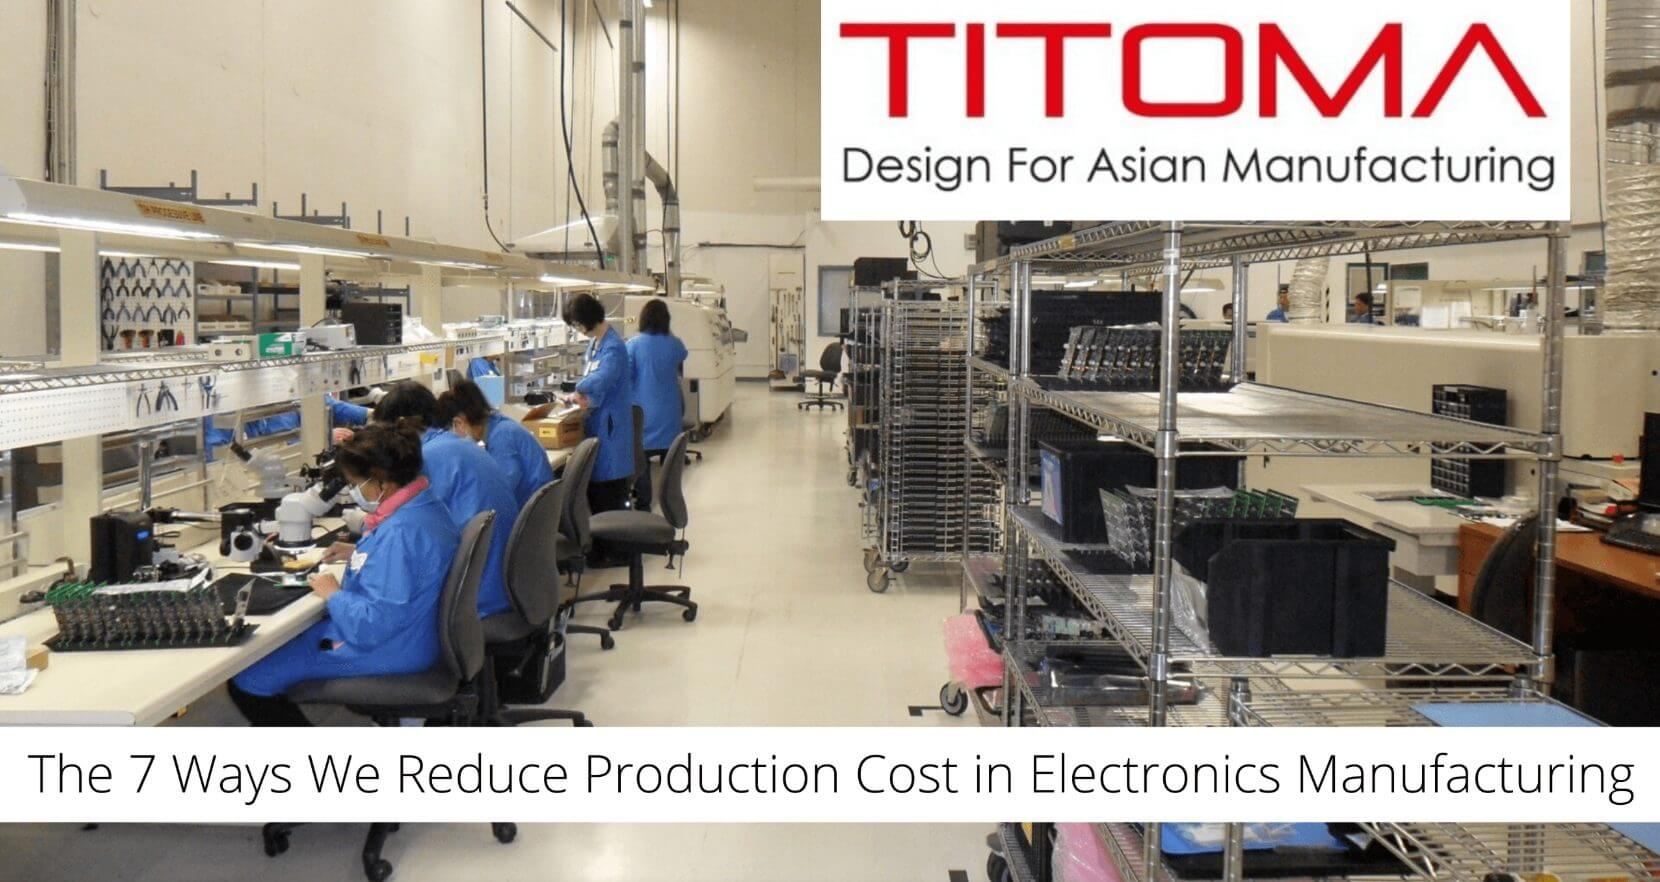 In this article, we will see how to technically reduce the production cost